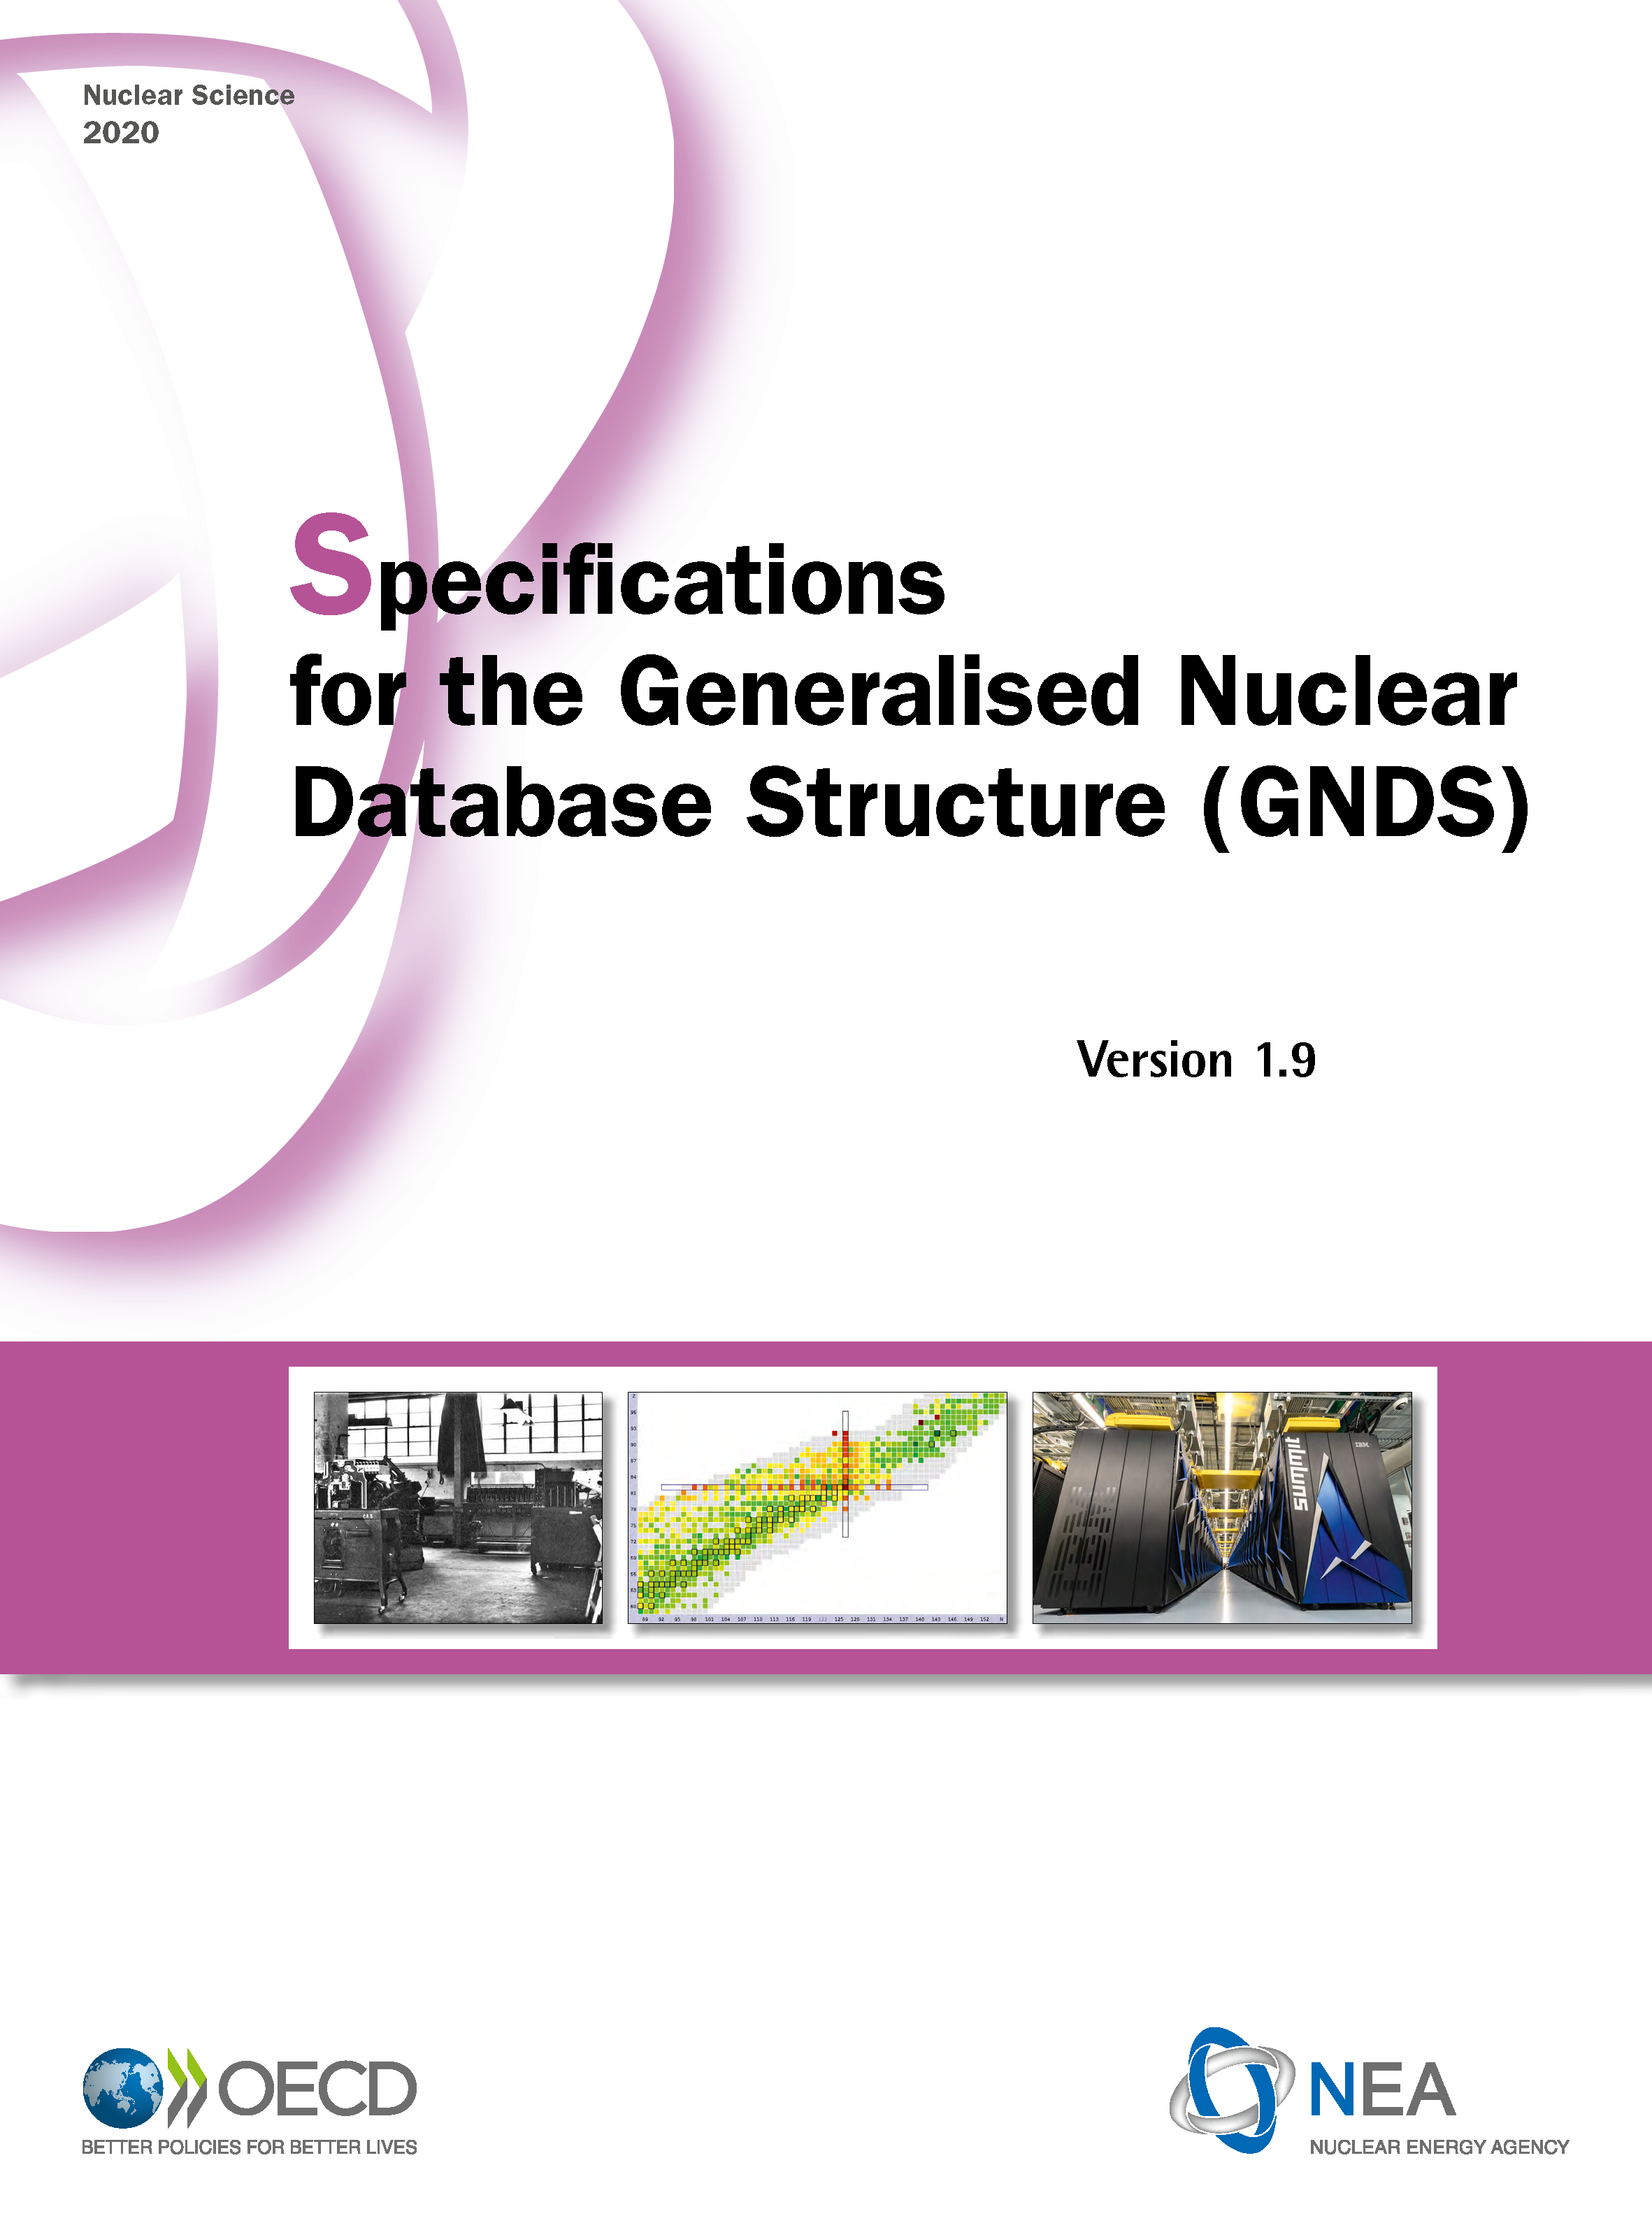 The Generalised Nuclear Database Structure: Establishing an International Nuclear Data Standard